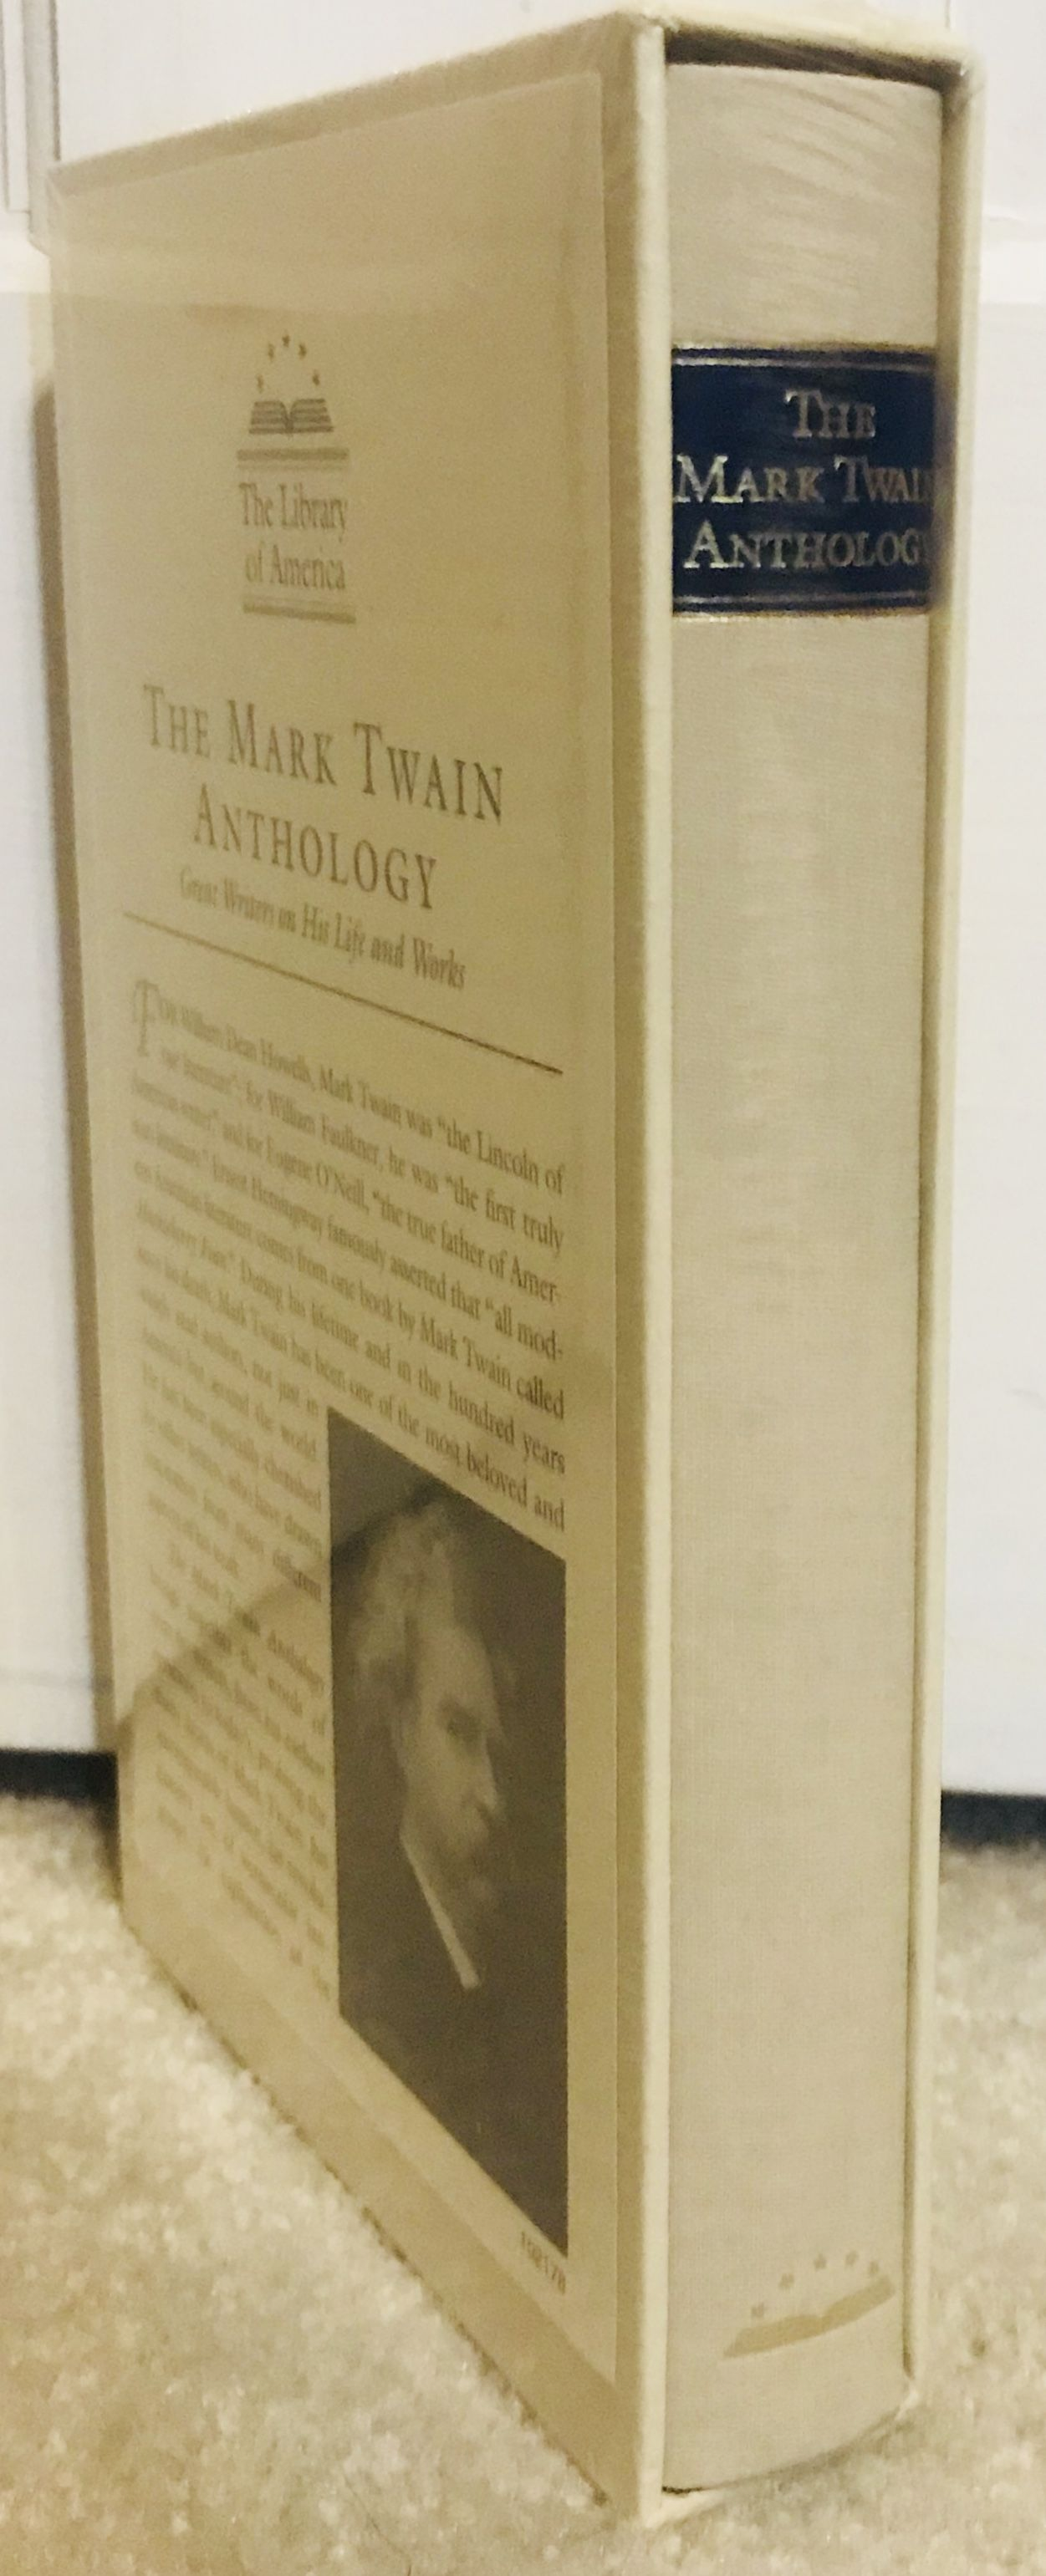 The Mark Twain Anthology (LOA #199): Great Writers on His Life and Work (Library of America)